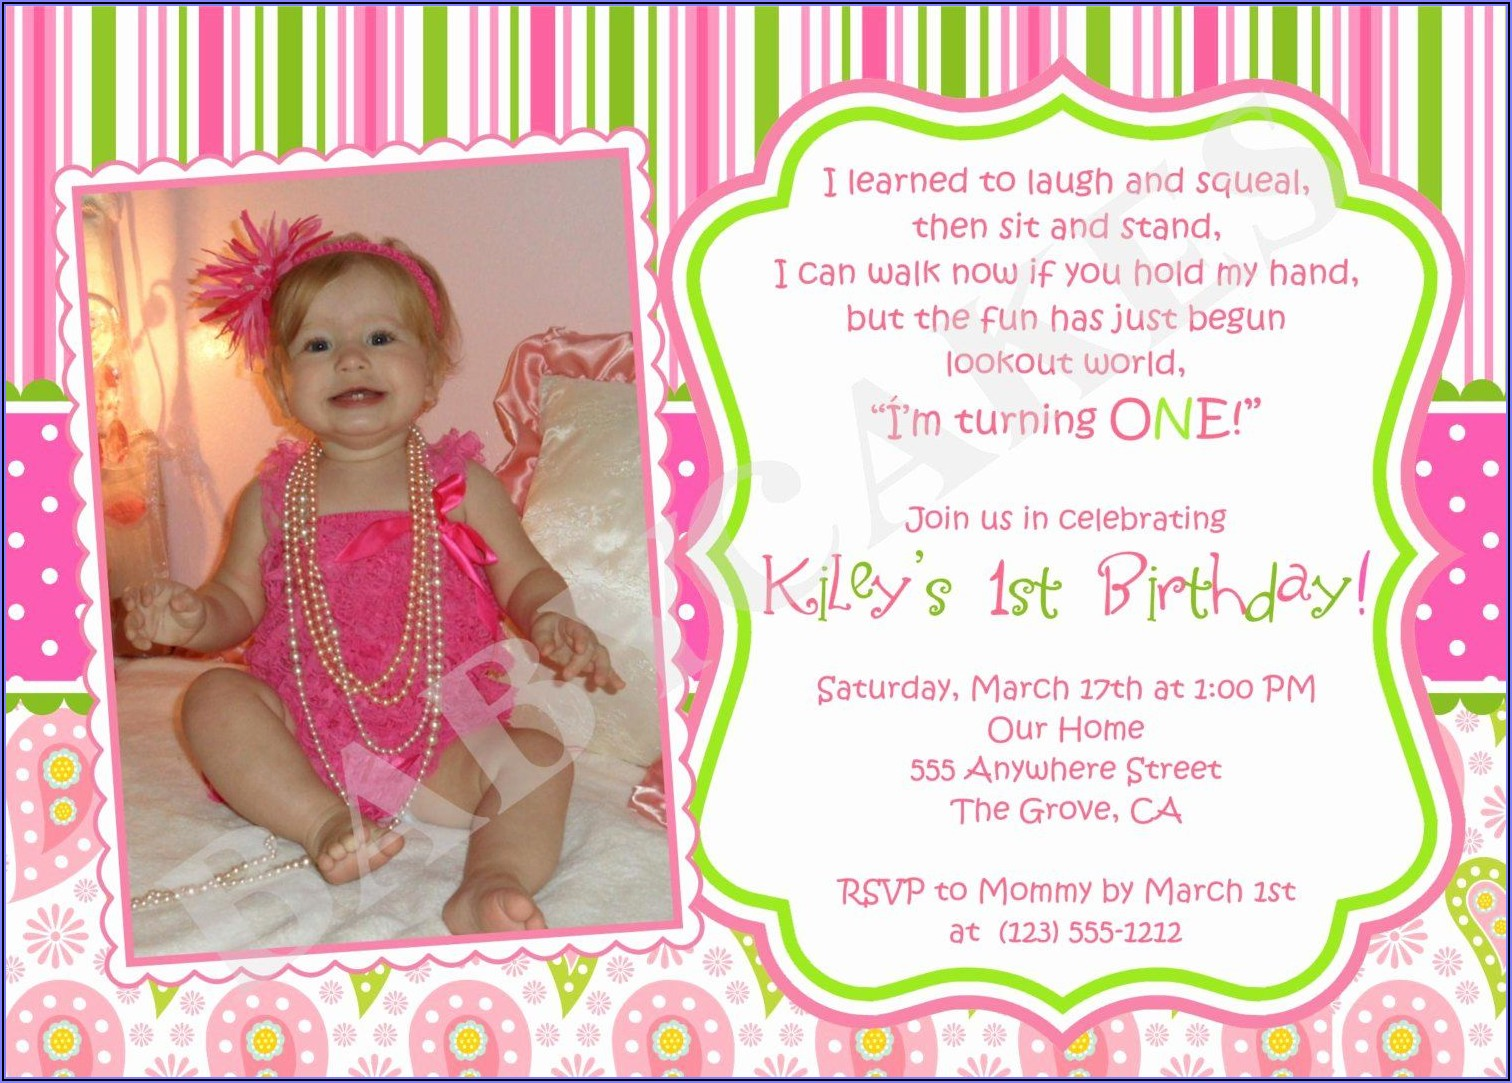 1st Birthday Invitation Text Message Sample